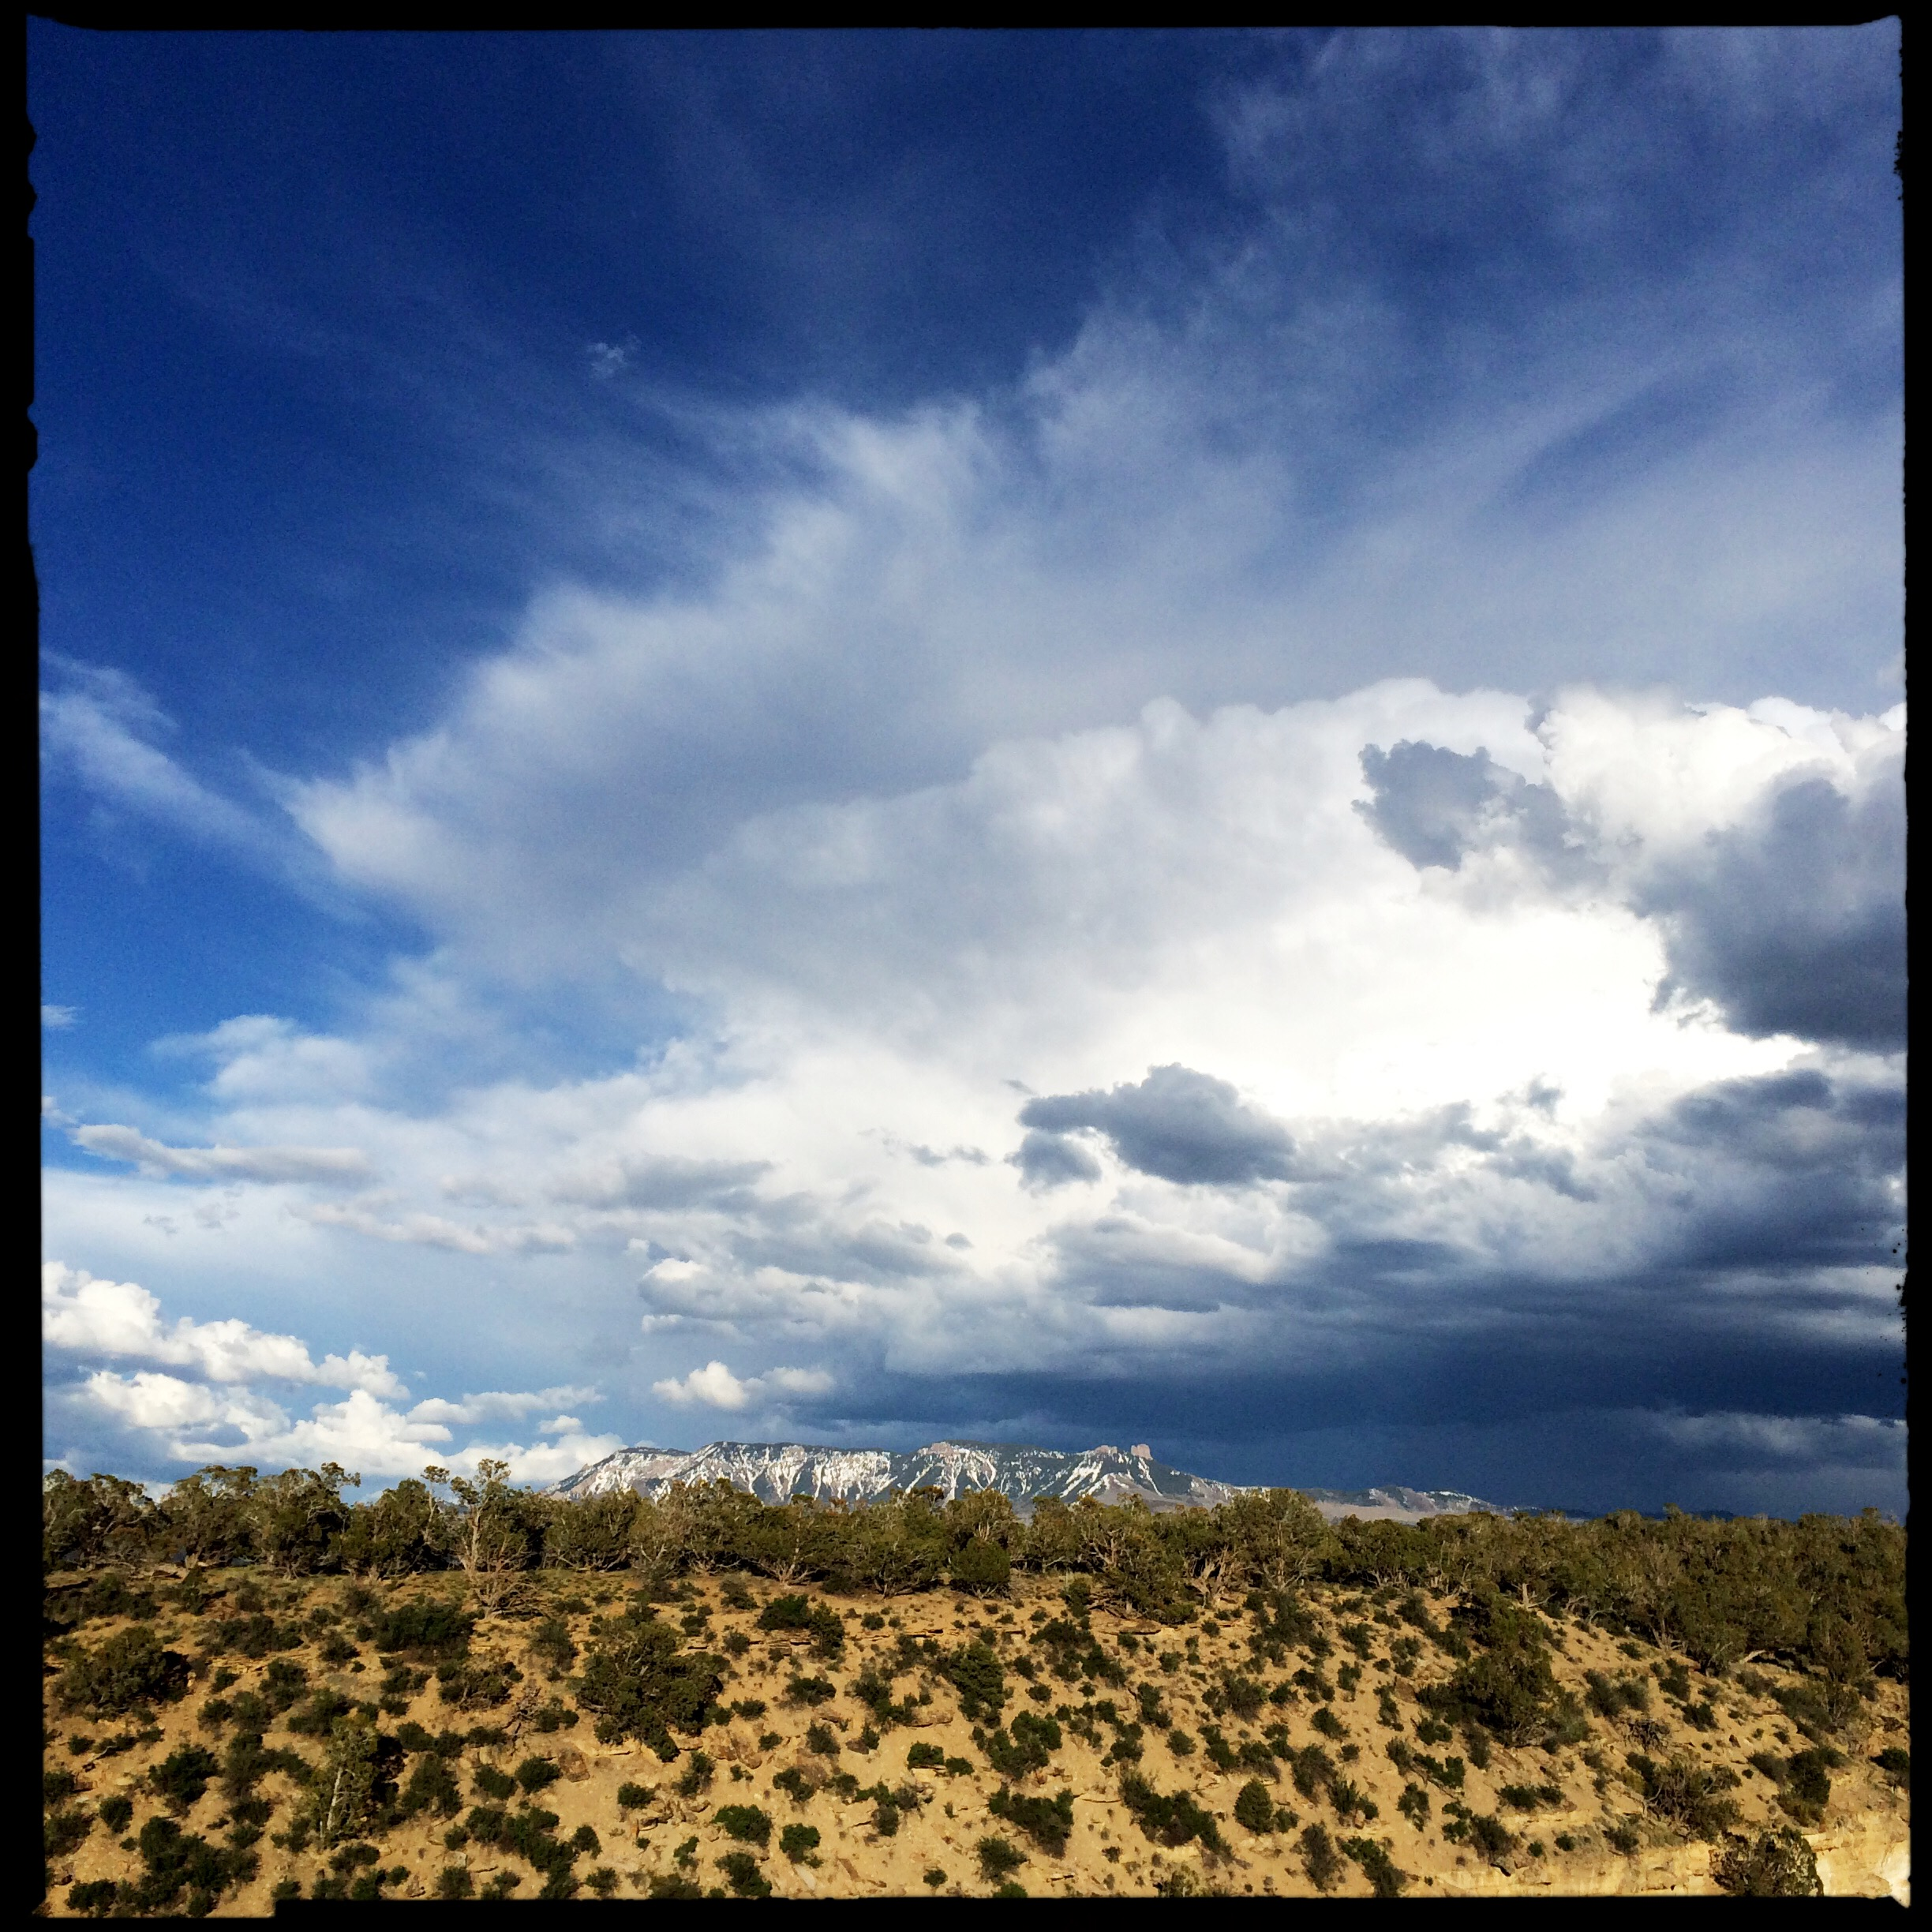 The skies have been crazy gorgeous with all this moisture hovering around.